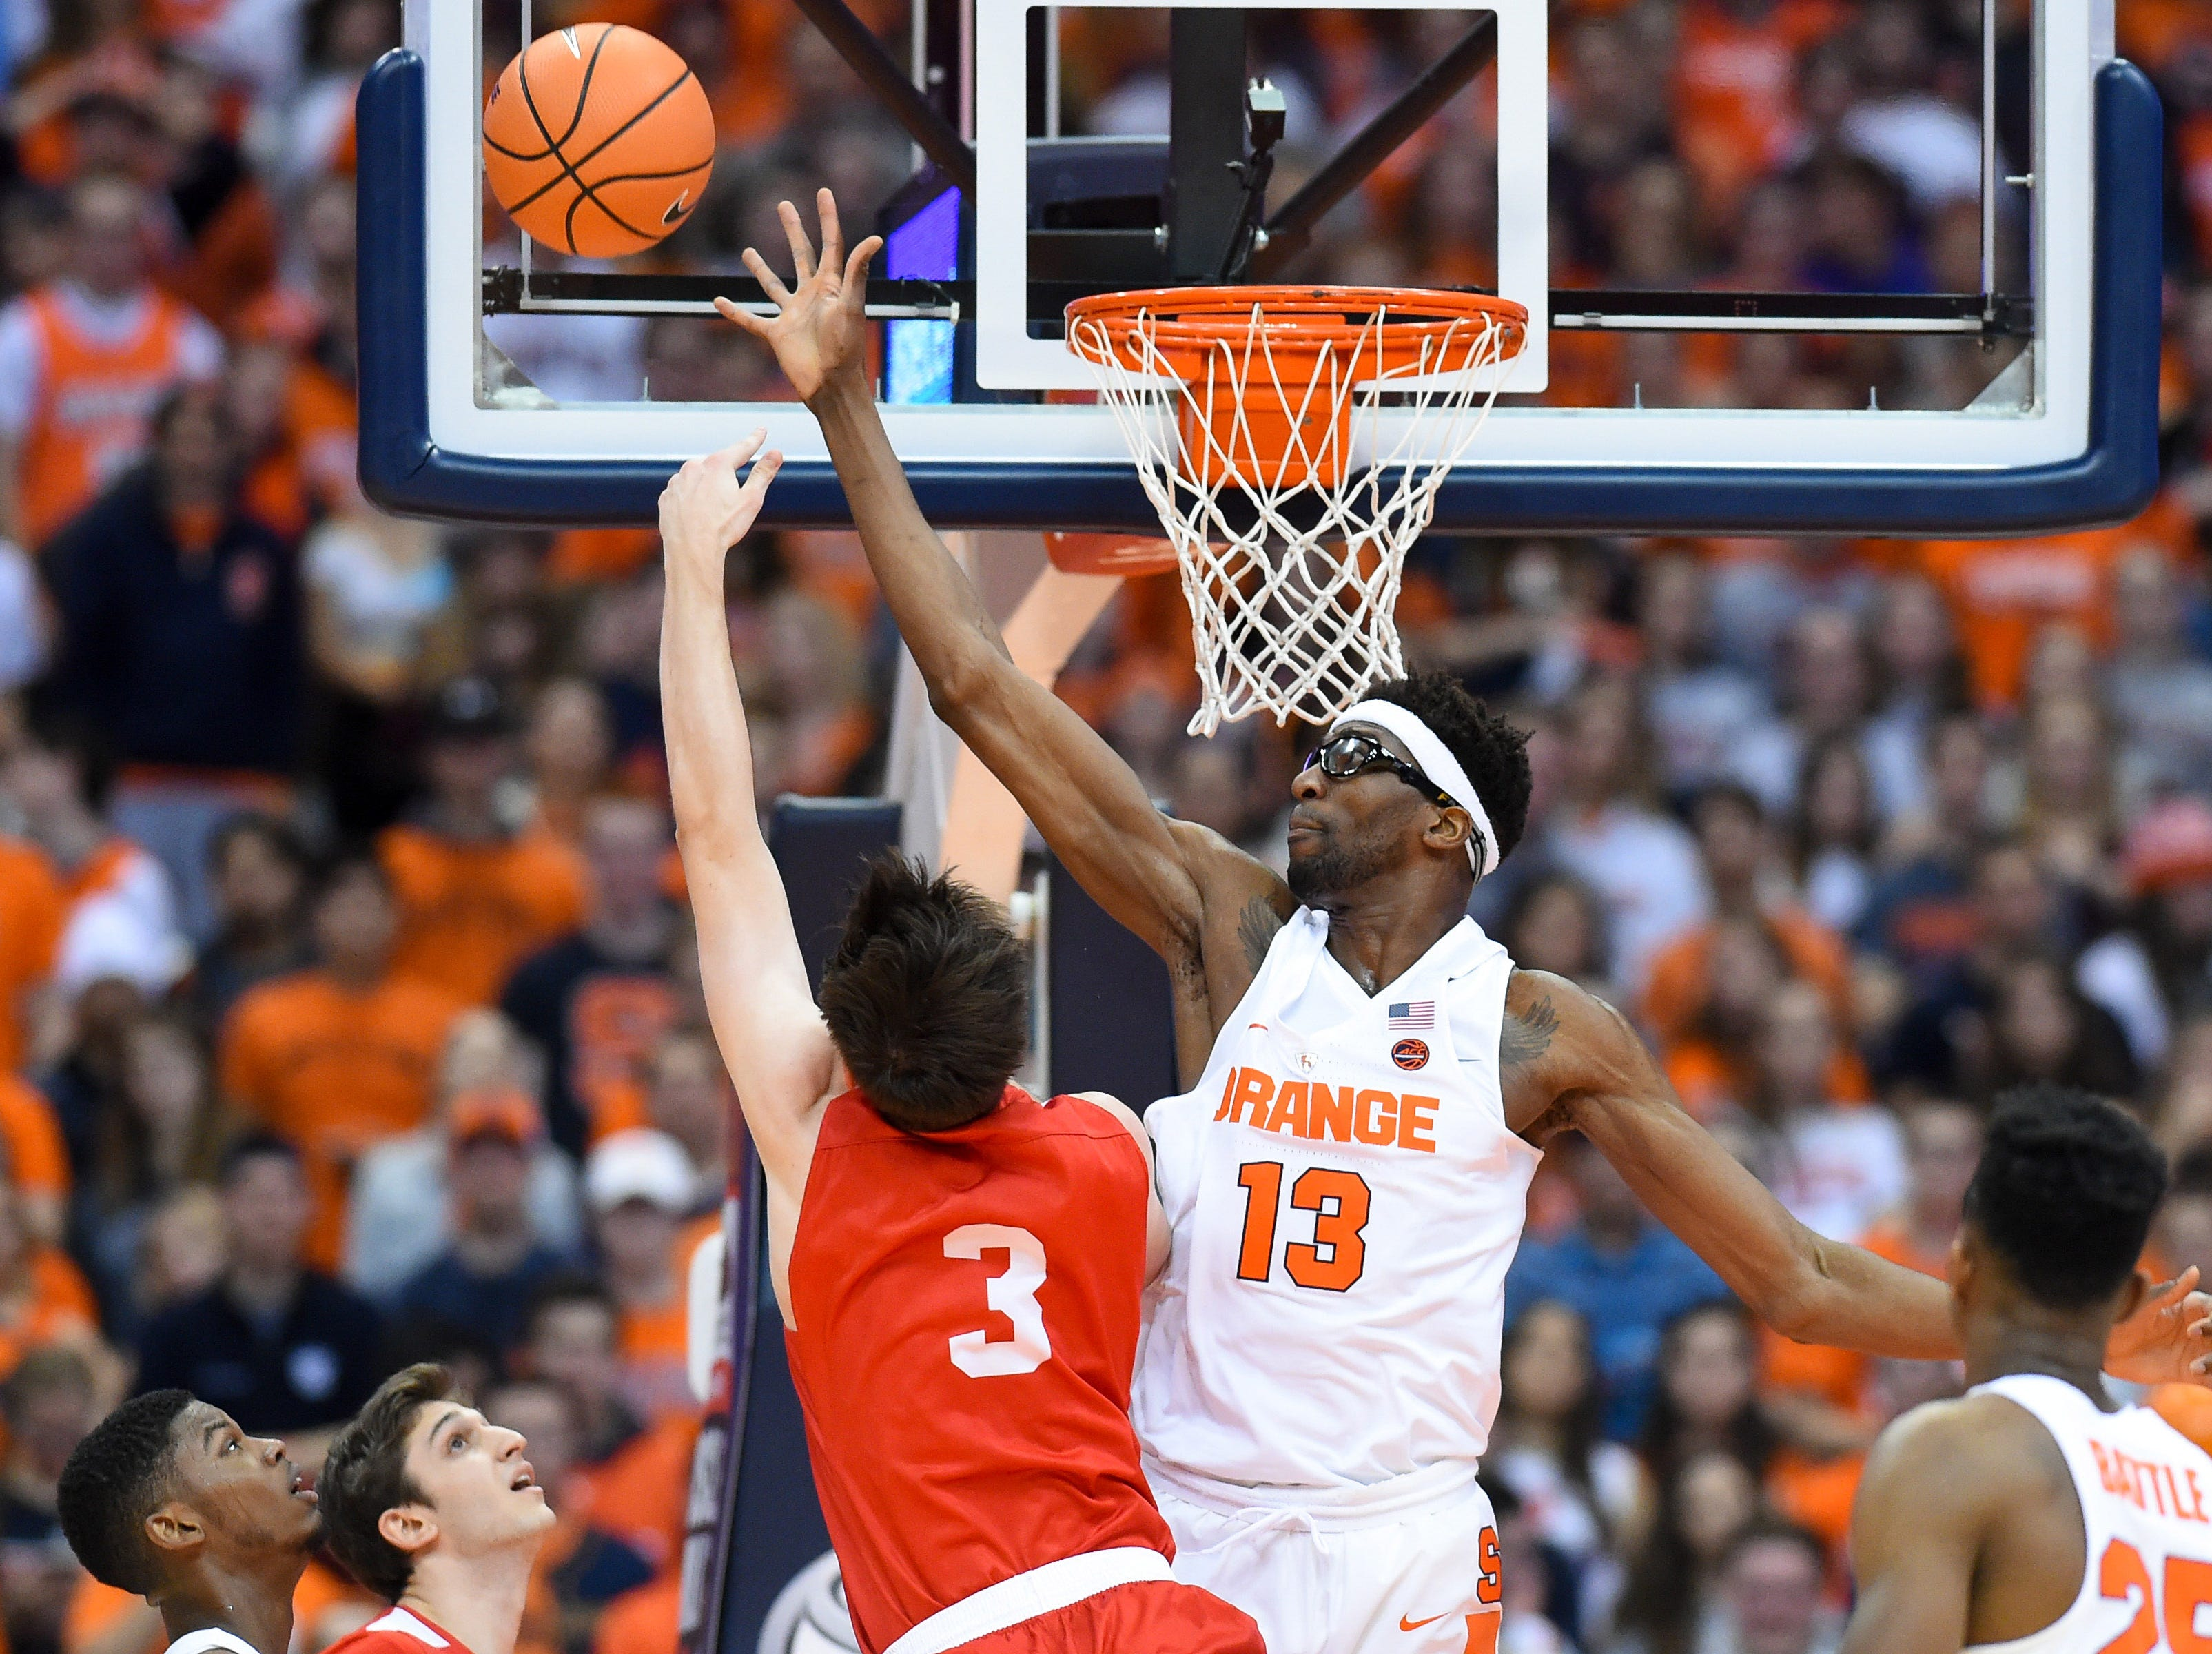 Nov 10, 2017; Syracuse, NY, USA; Syracuse Orange center Paschal Chukwu (13) alters the shot of Cornell Big Red forward Jimmy Boeheim (3) during the first half at the Carrier Dome. Mandatory Credit: Rich Barnes-USA TODAY Sports